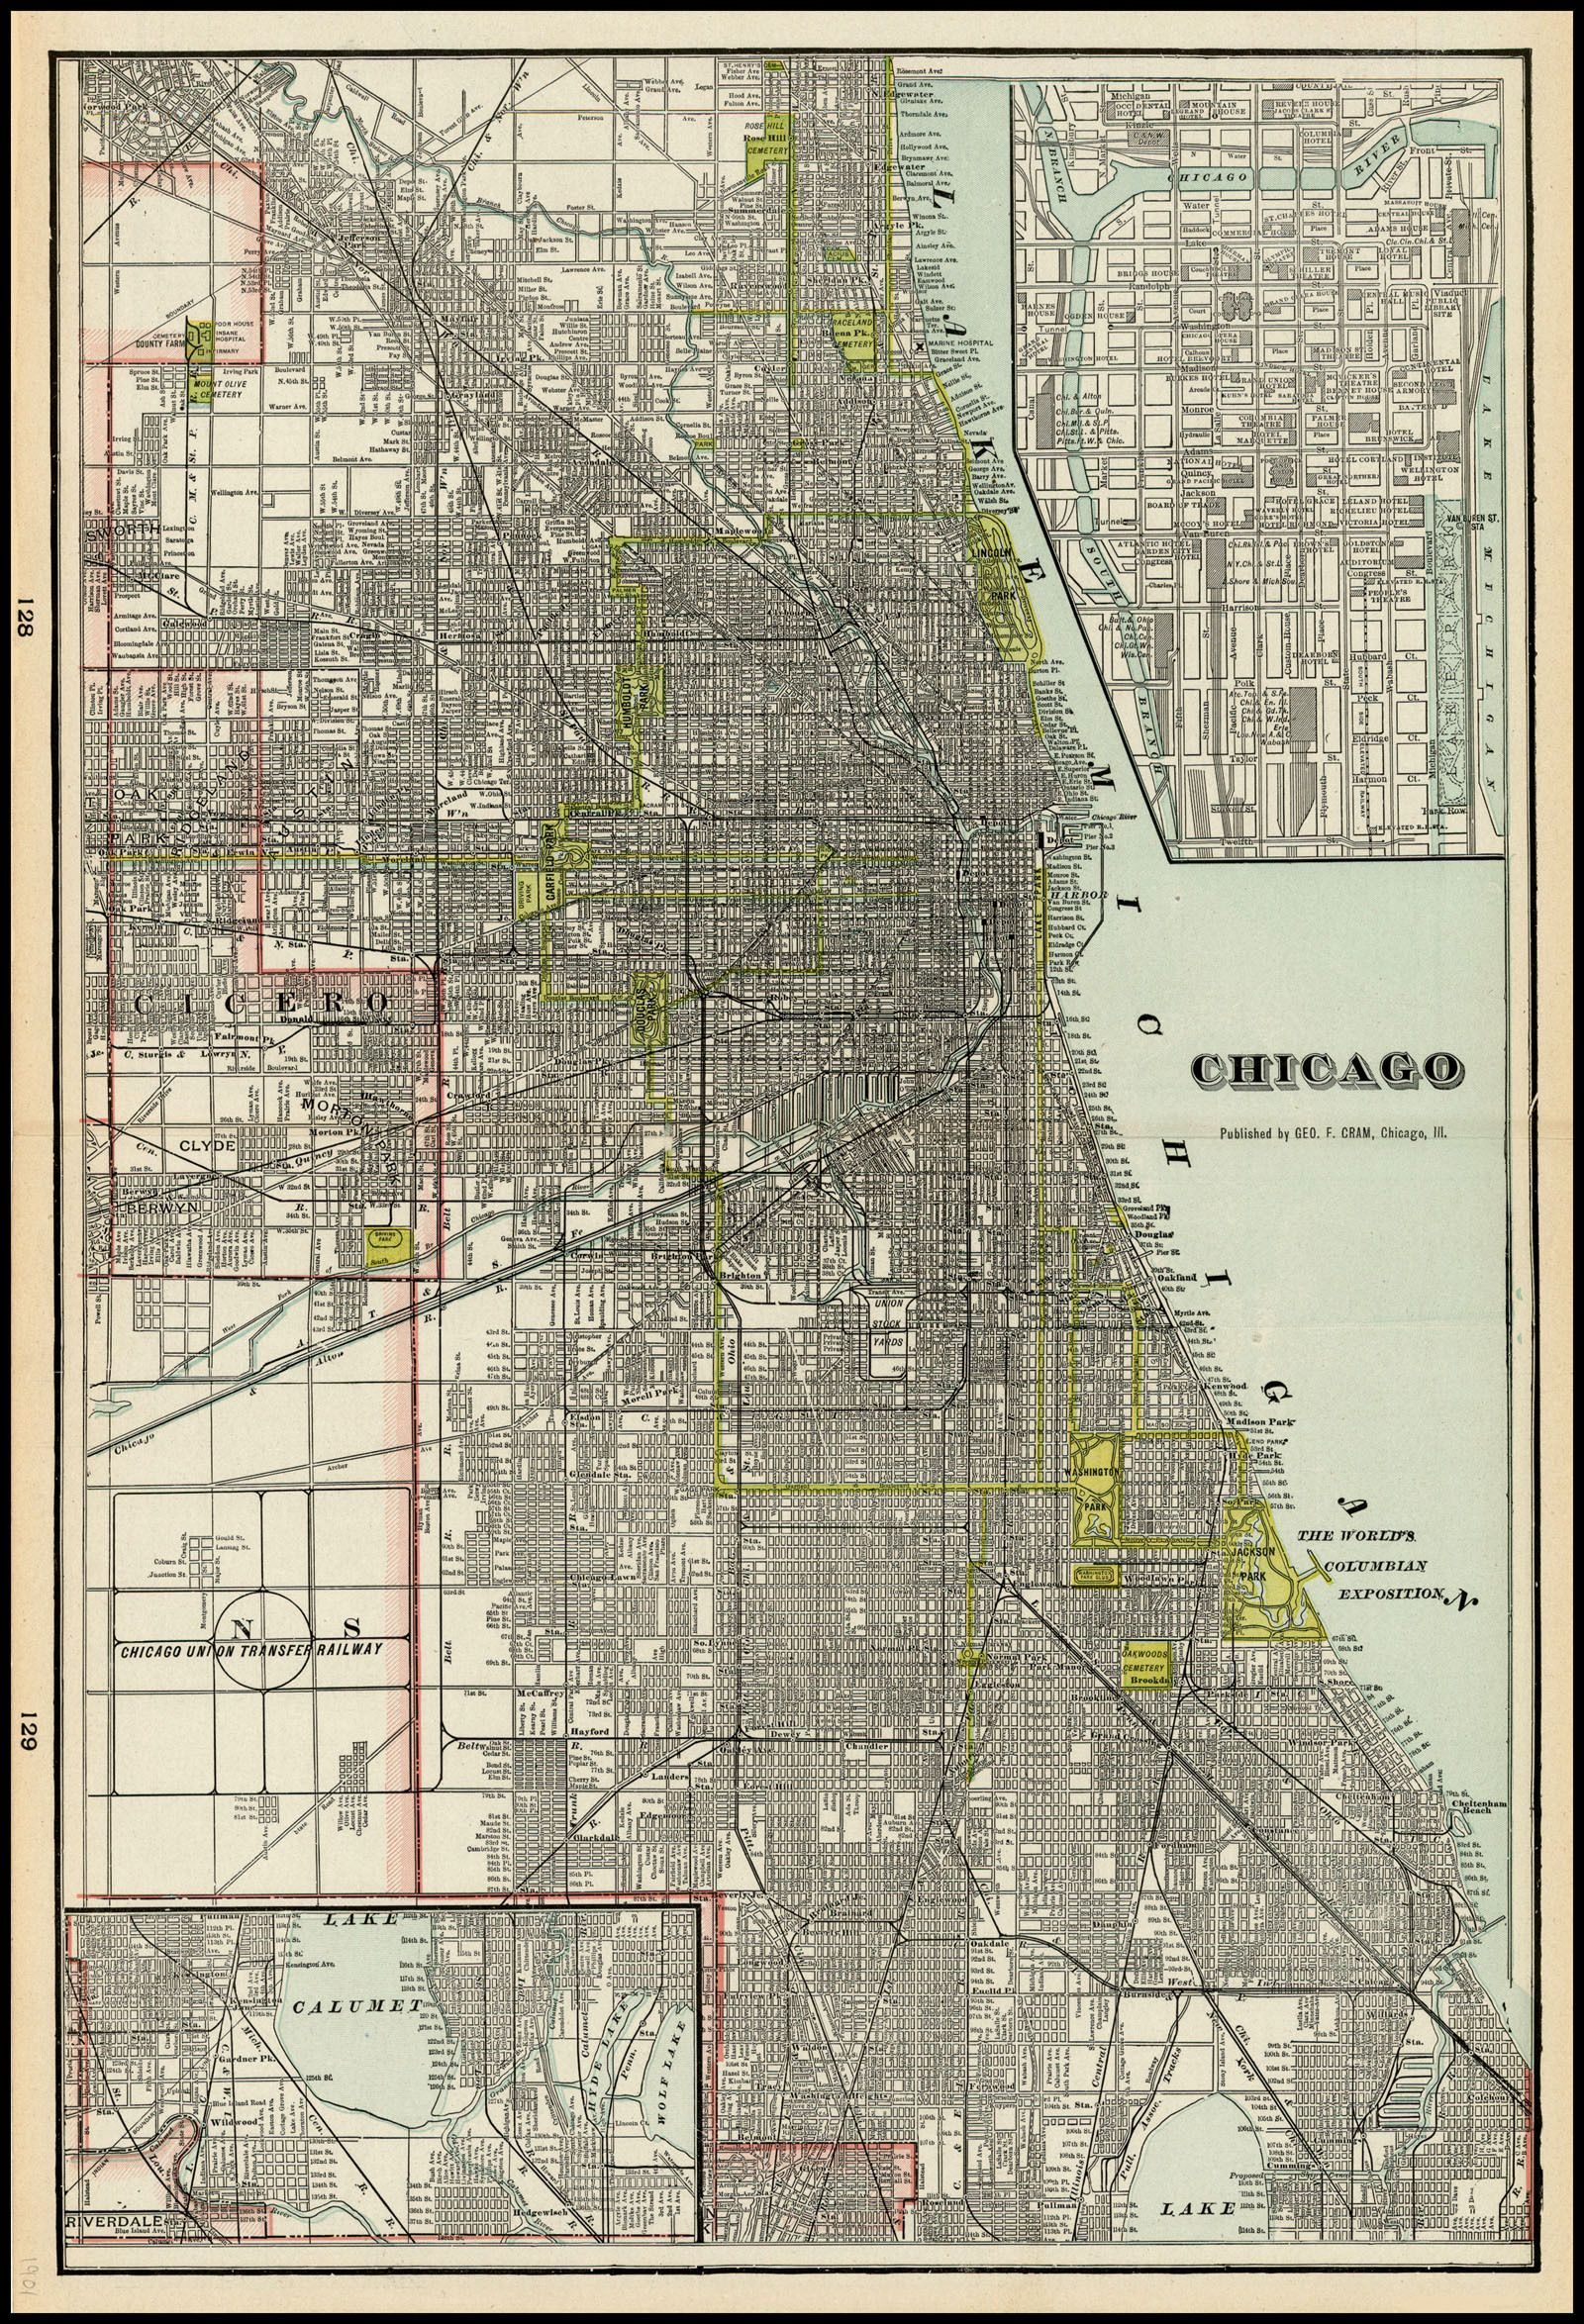 second city chicago map Vintage Map Of Chicago Chicago City Map Chicago City Chicago Map